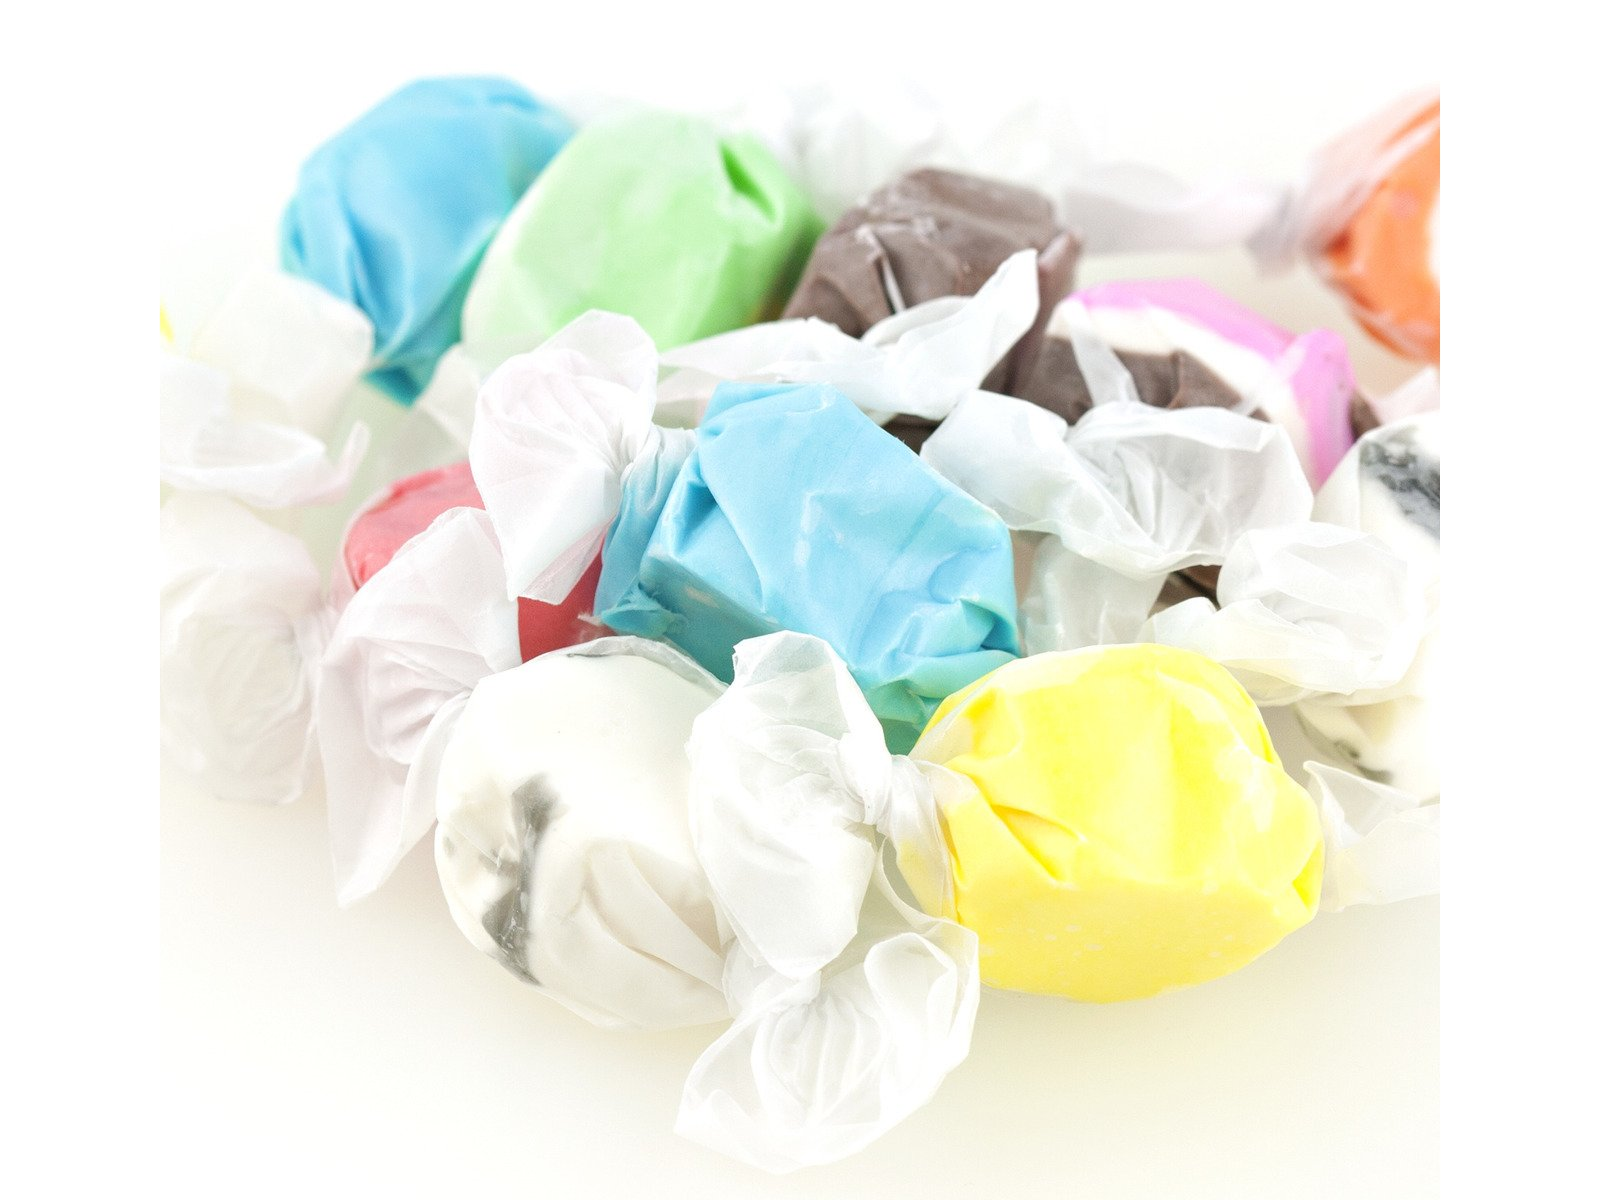 Assorted Saltwater Taffy Bulk Candy (3 lb) Flavors Chocolate, Huckleberry, Peppermint, Banana, Vanilla, and More by West End Foods